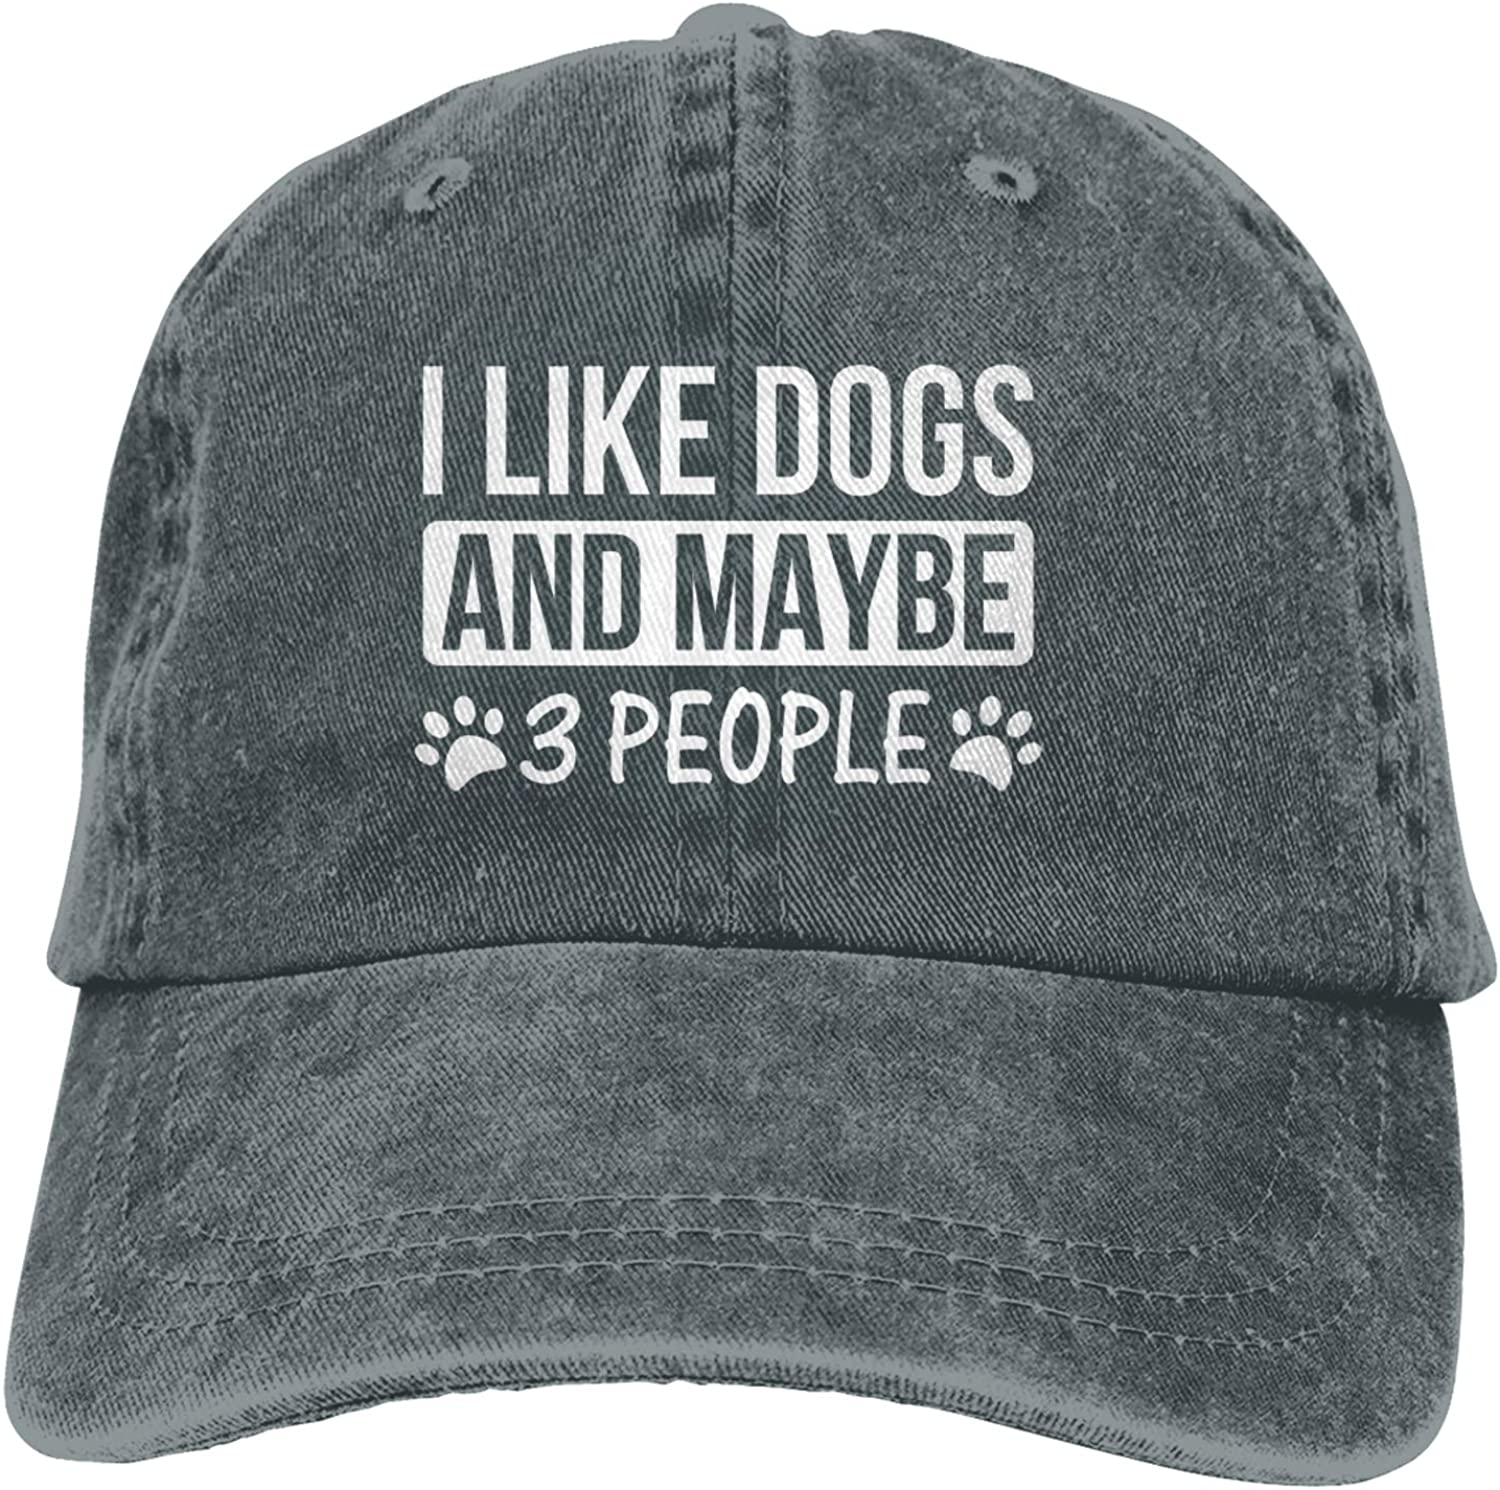 I Like Dogs and Maybe 3 People Dog Lovers Baseball Hat Adjustable Washable Jeans Cowboy Hat Unisex Trucker Cap Dad Hat